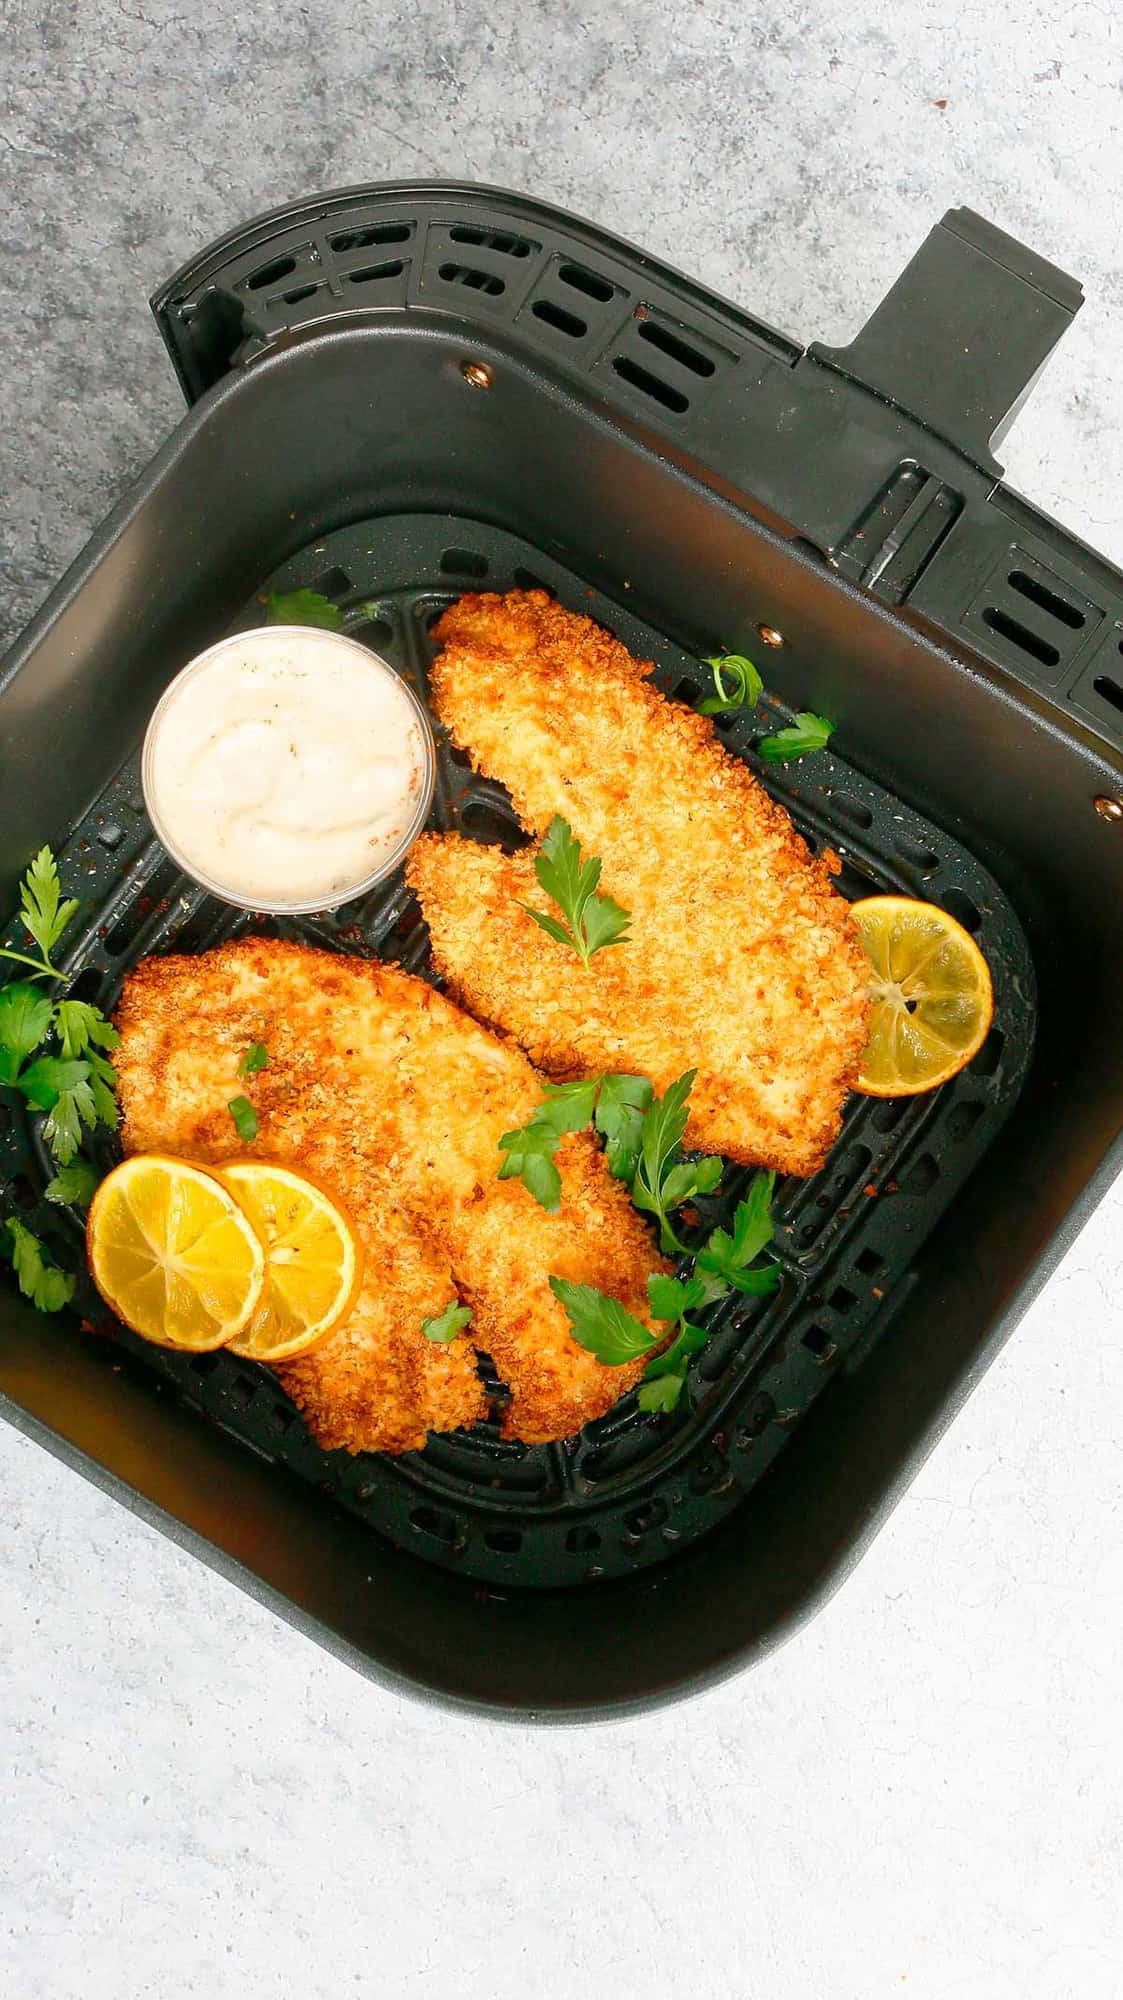 an air fryer basket with cooked tilapia garnished with lemon slices and parsley